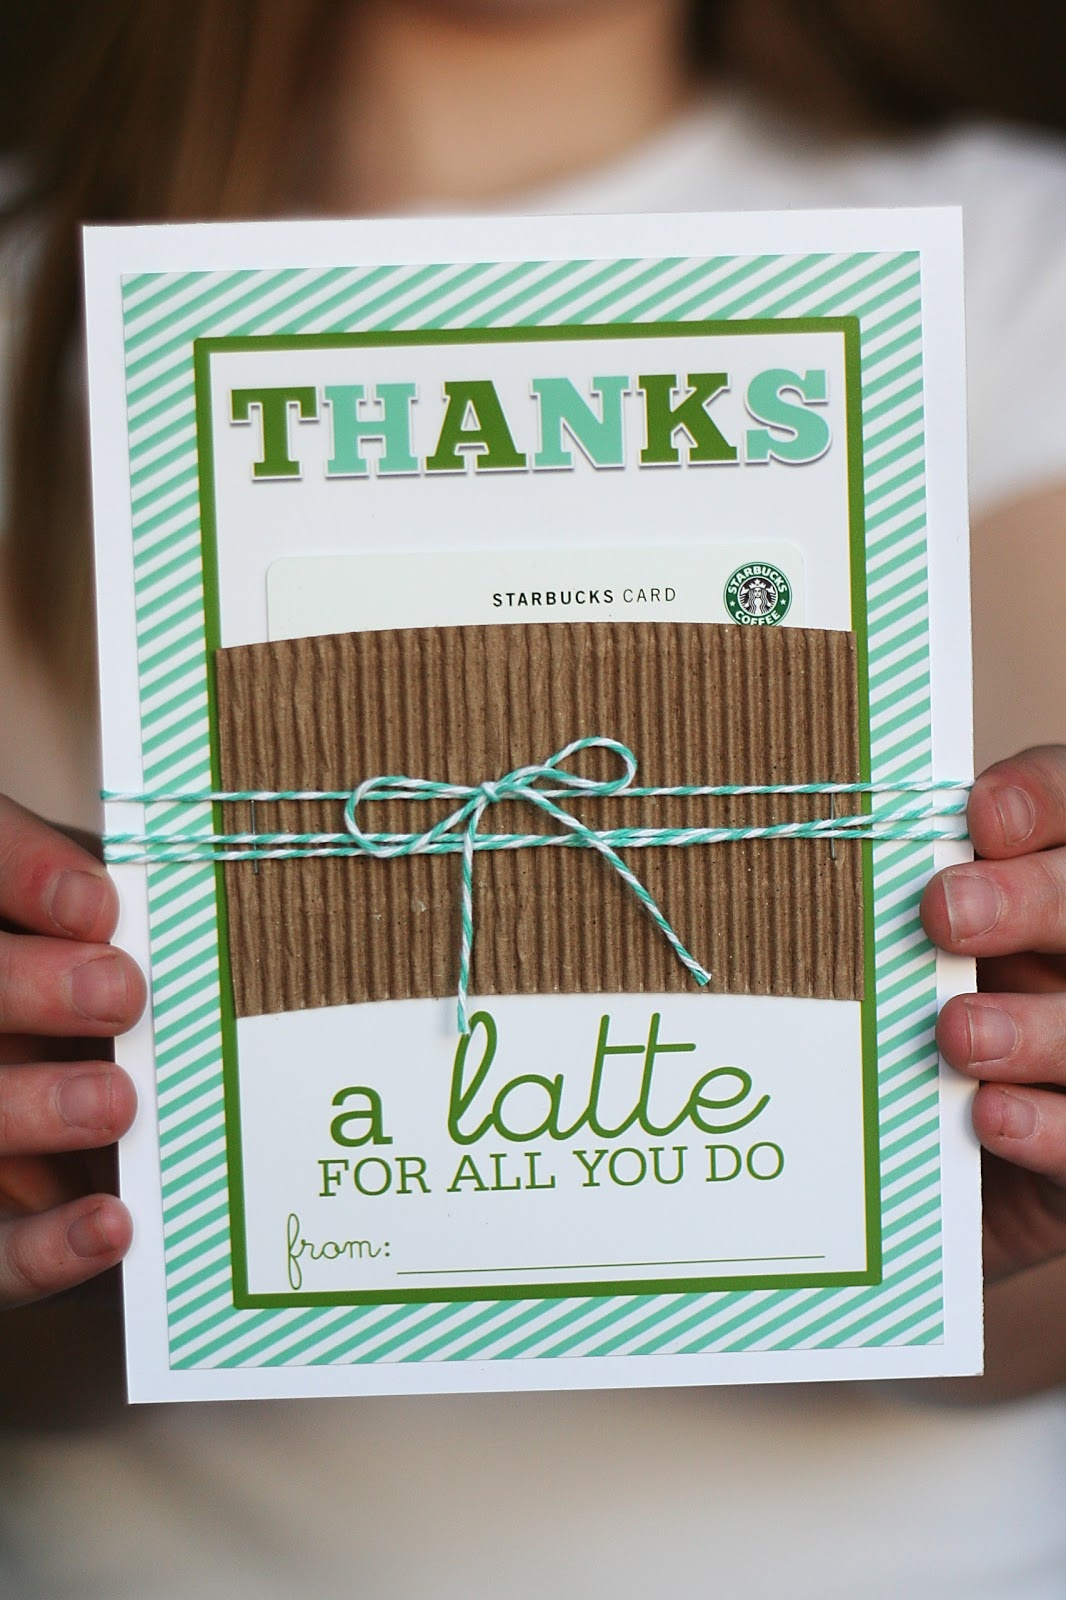 Thanks A Latte Card You Can Print For Free | Eighteen25 - Thanks A Latte Free Printable